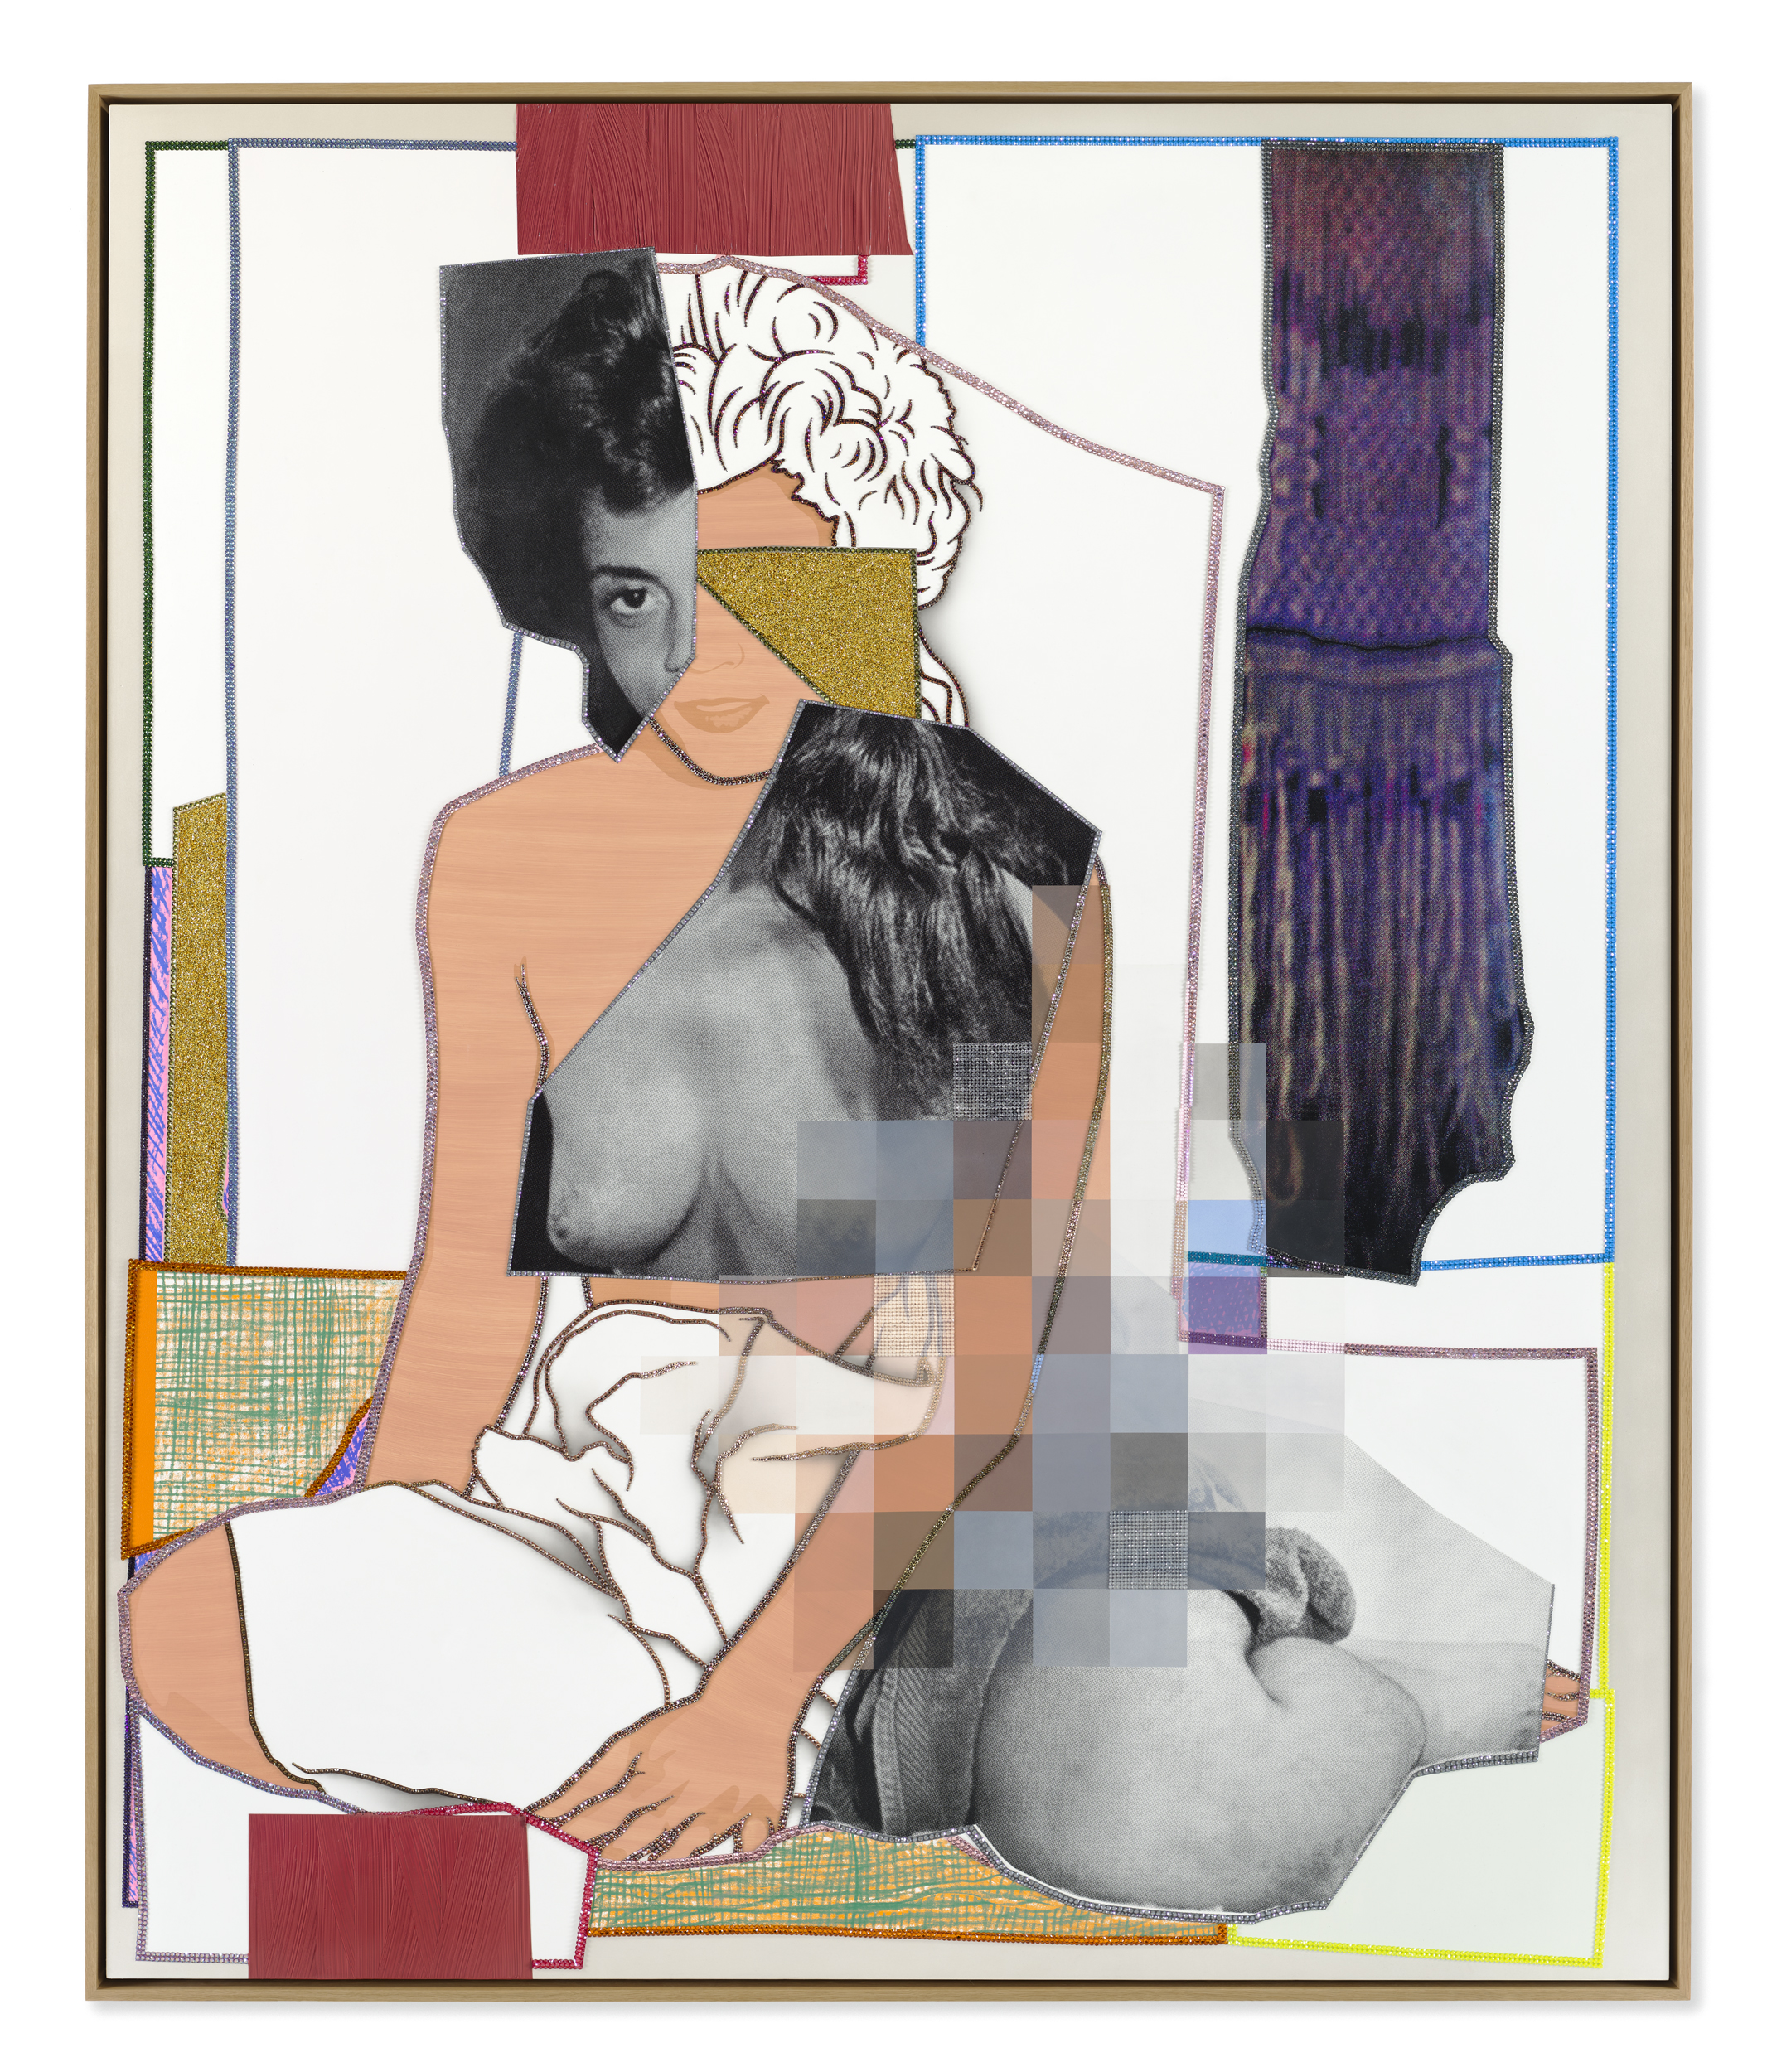 Mickalene Thomas, _May 1977_, 2021. Rhinestones, glitter, acrylic, and oil on canvas mounted on wood panel with oak frame 98⅛ x 82⅛ inches (249.2 x 208.6 cm). © Mickalene Thomas / Artists Rights Society (ARS), New York.